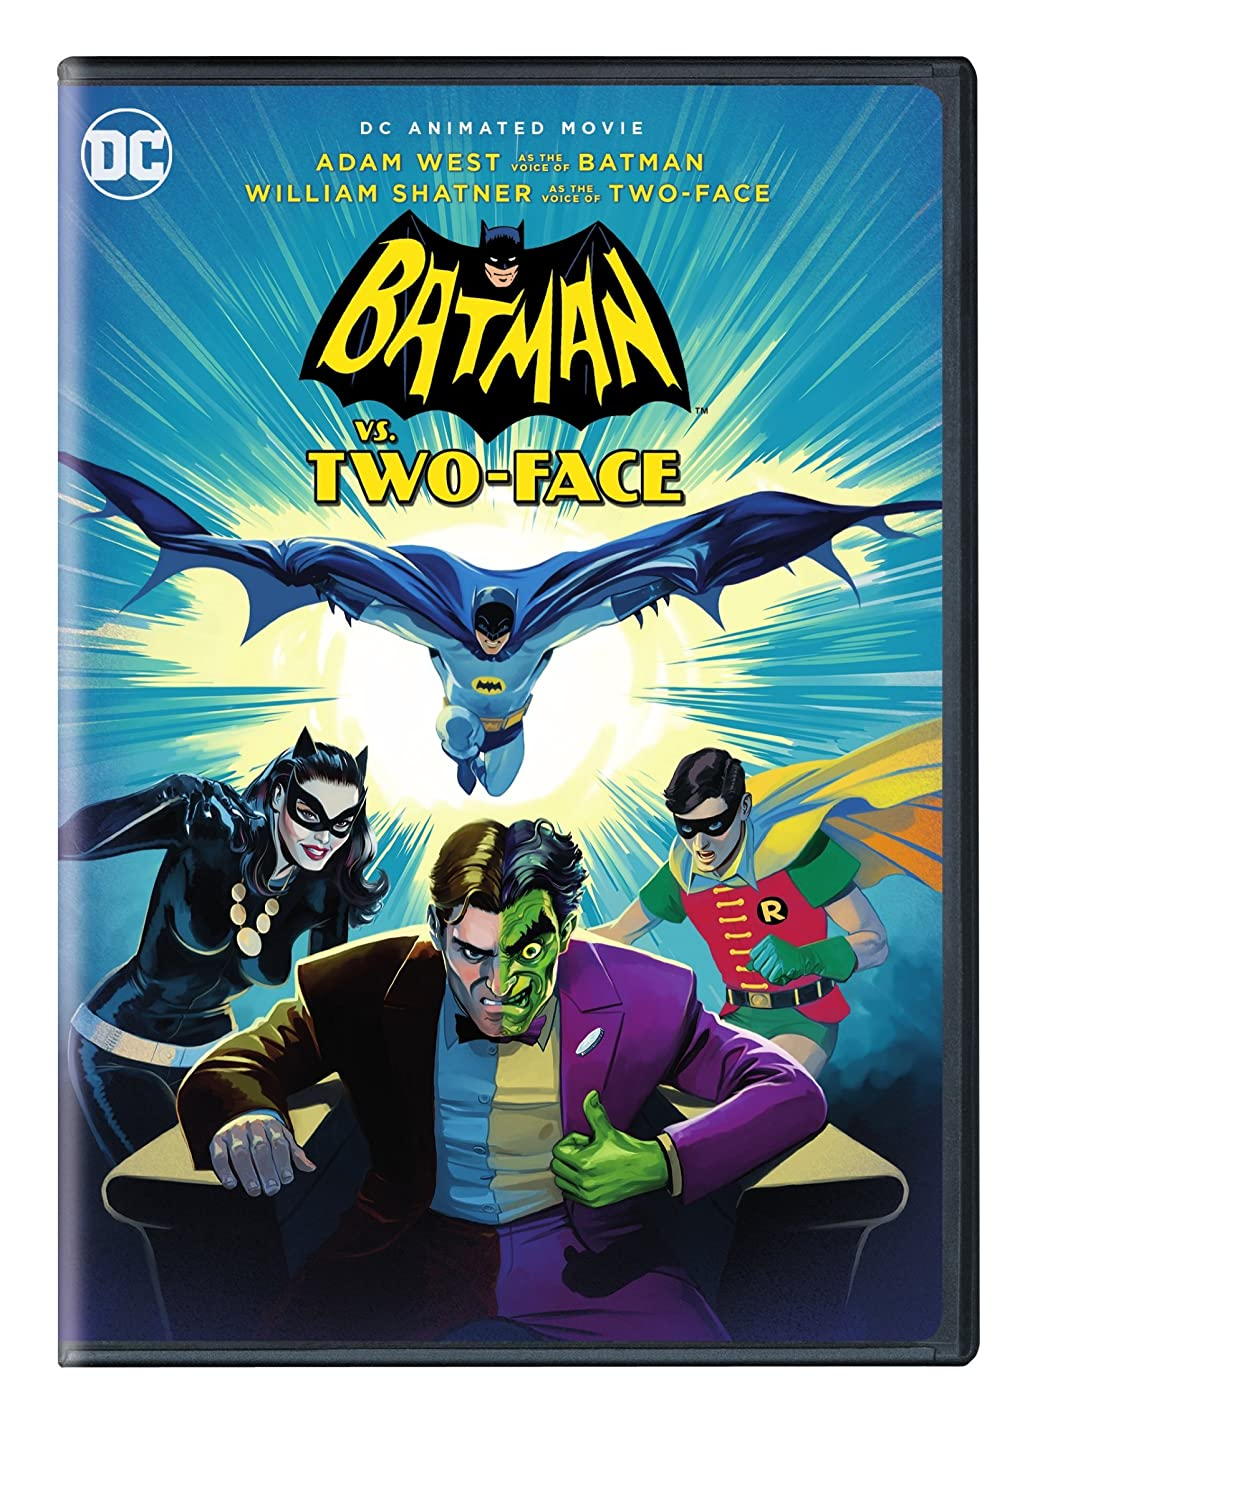 Amazon.com: Batman vs. Two-Face: Adam West, Burt Ward ...